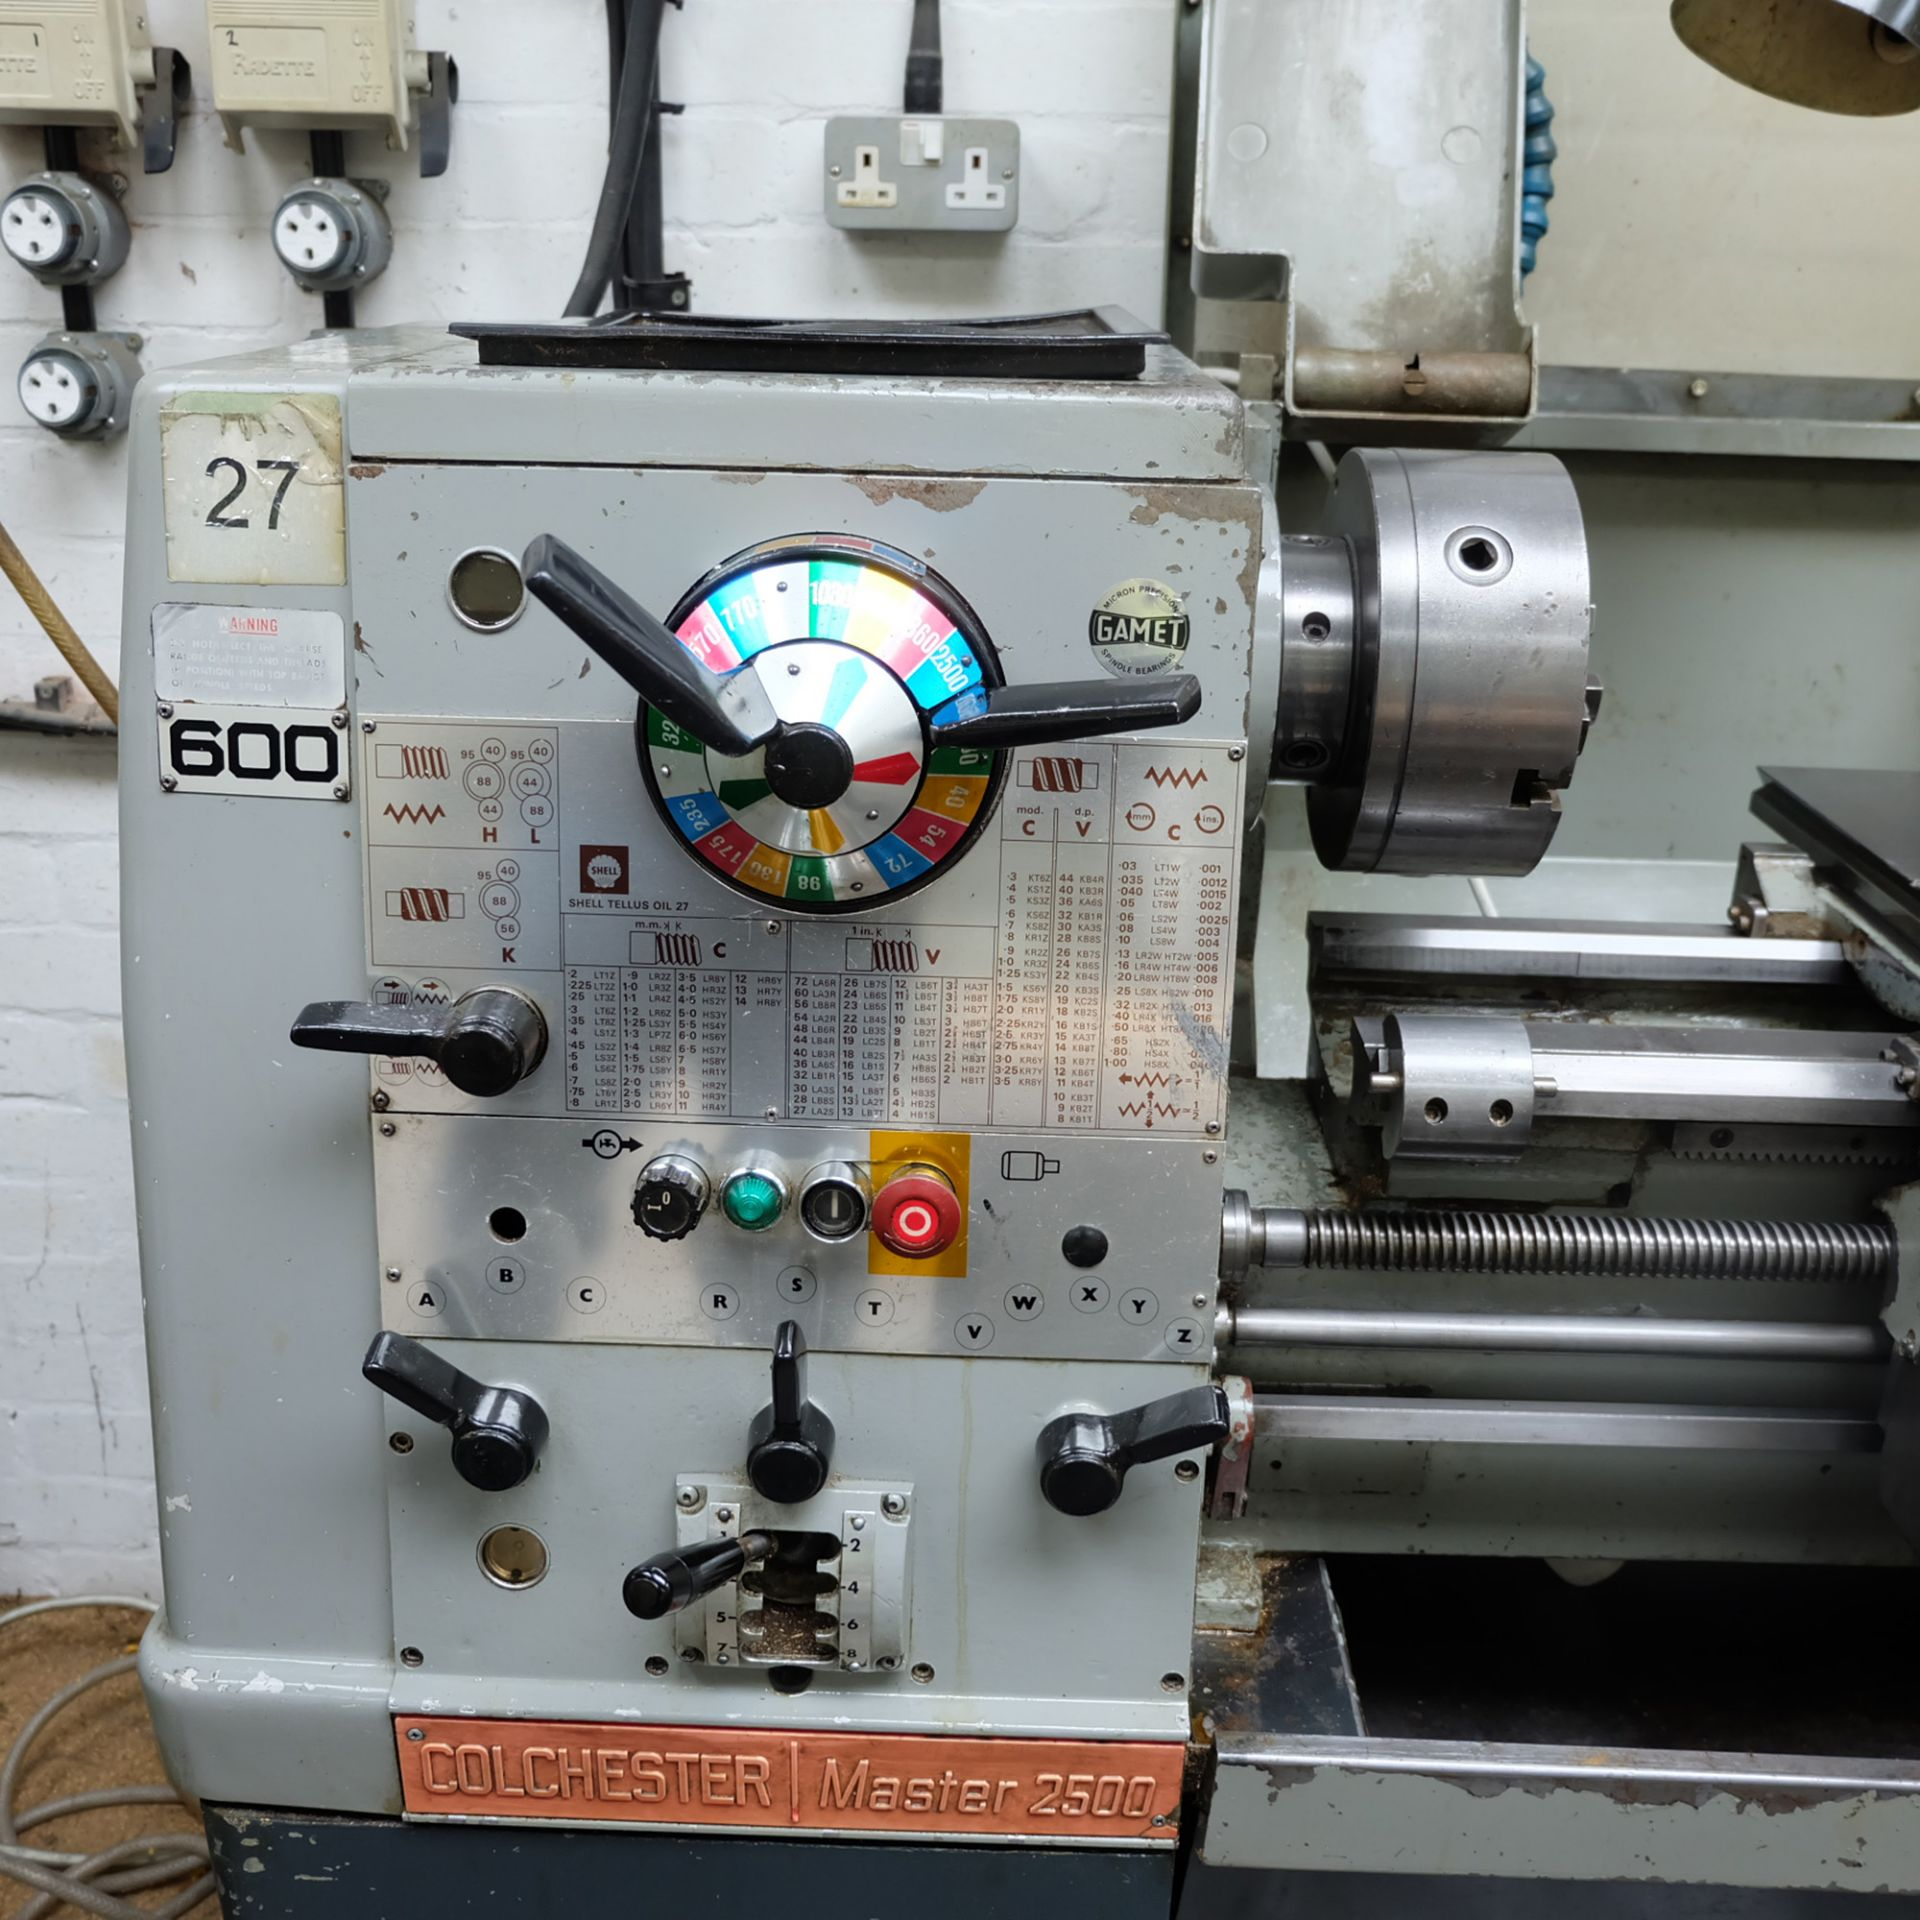 Colchester Master 2500 Gap Bed Centre Lathe. - Image 3 of 10